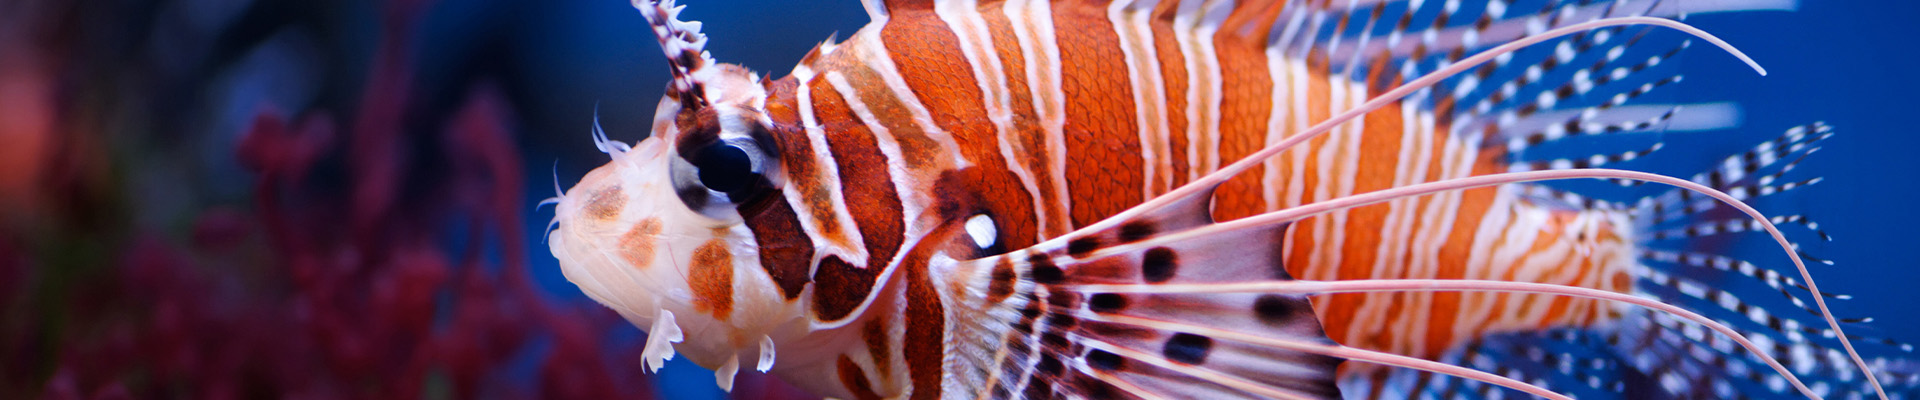 Image of a fish on the homepage